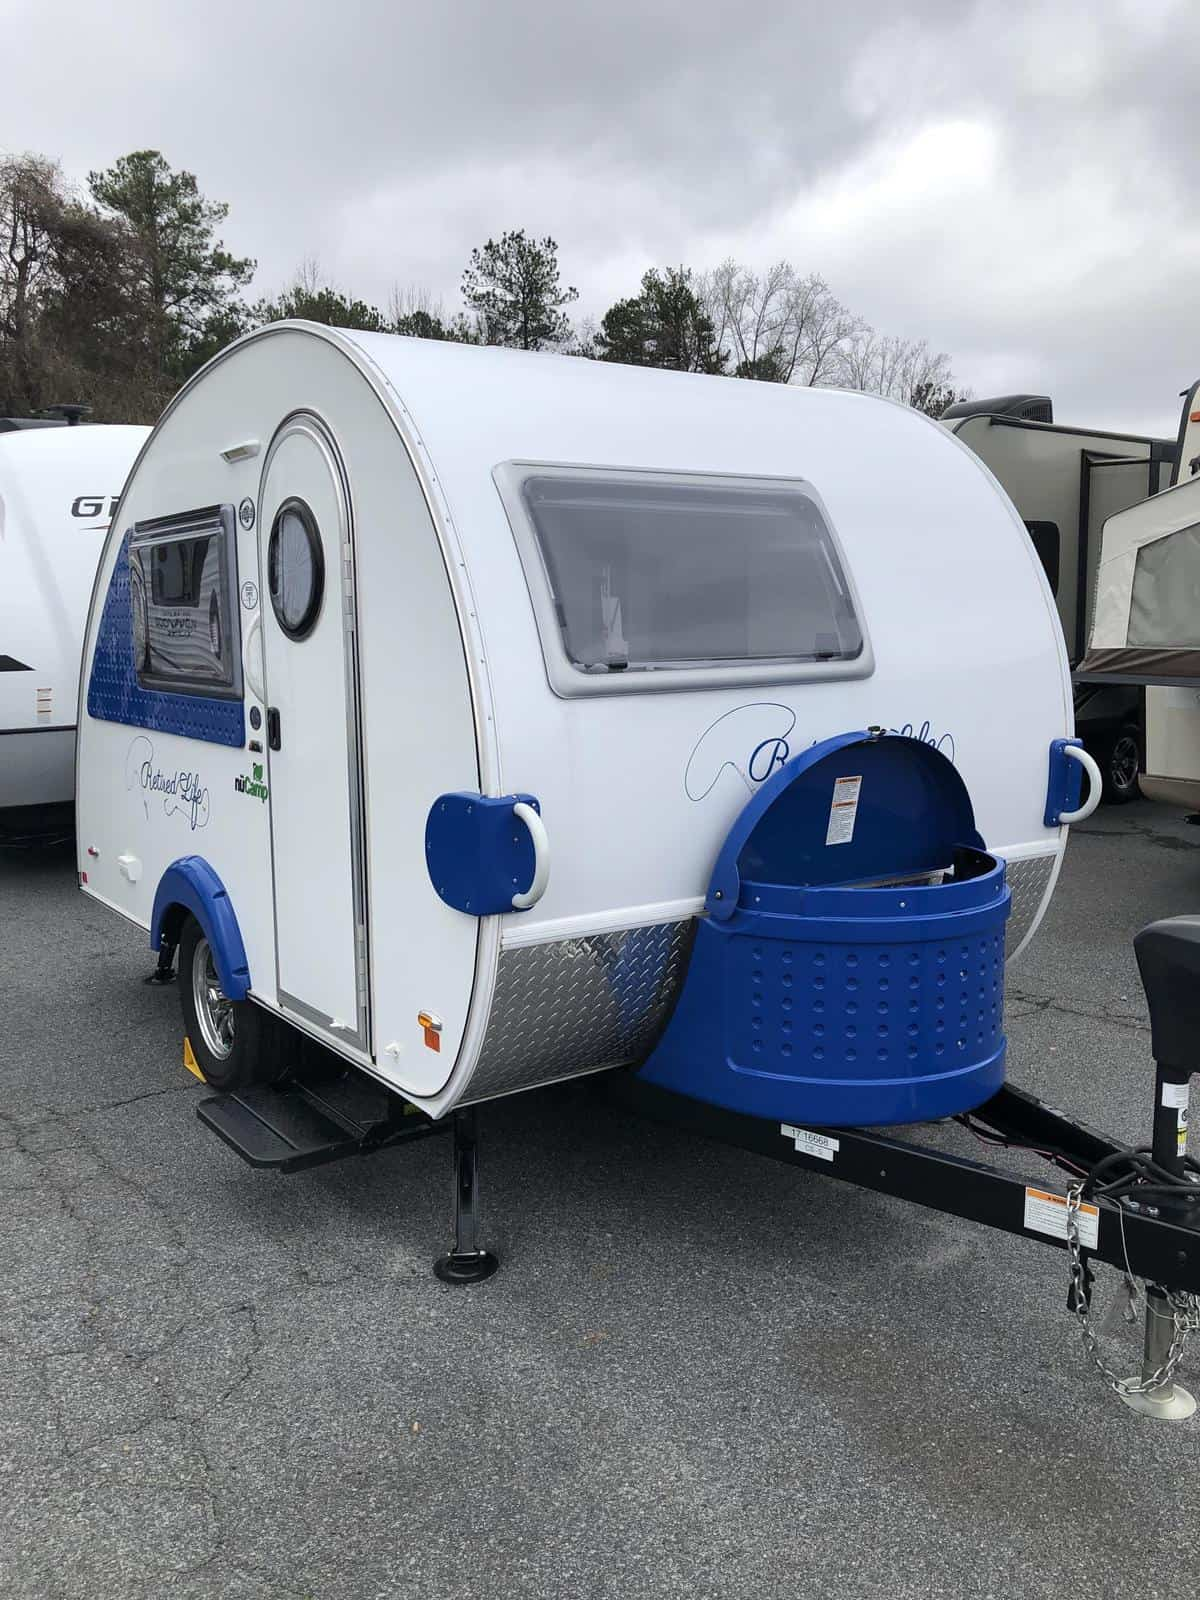 USED 2018 Nucamp Tab 18 CSS - Three Way Campers